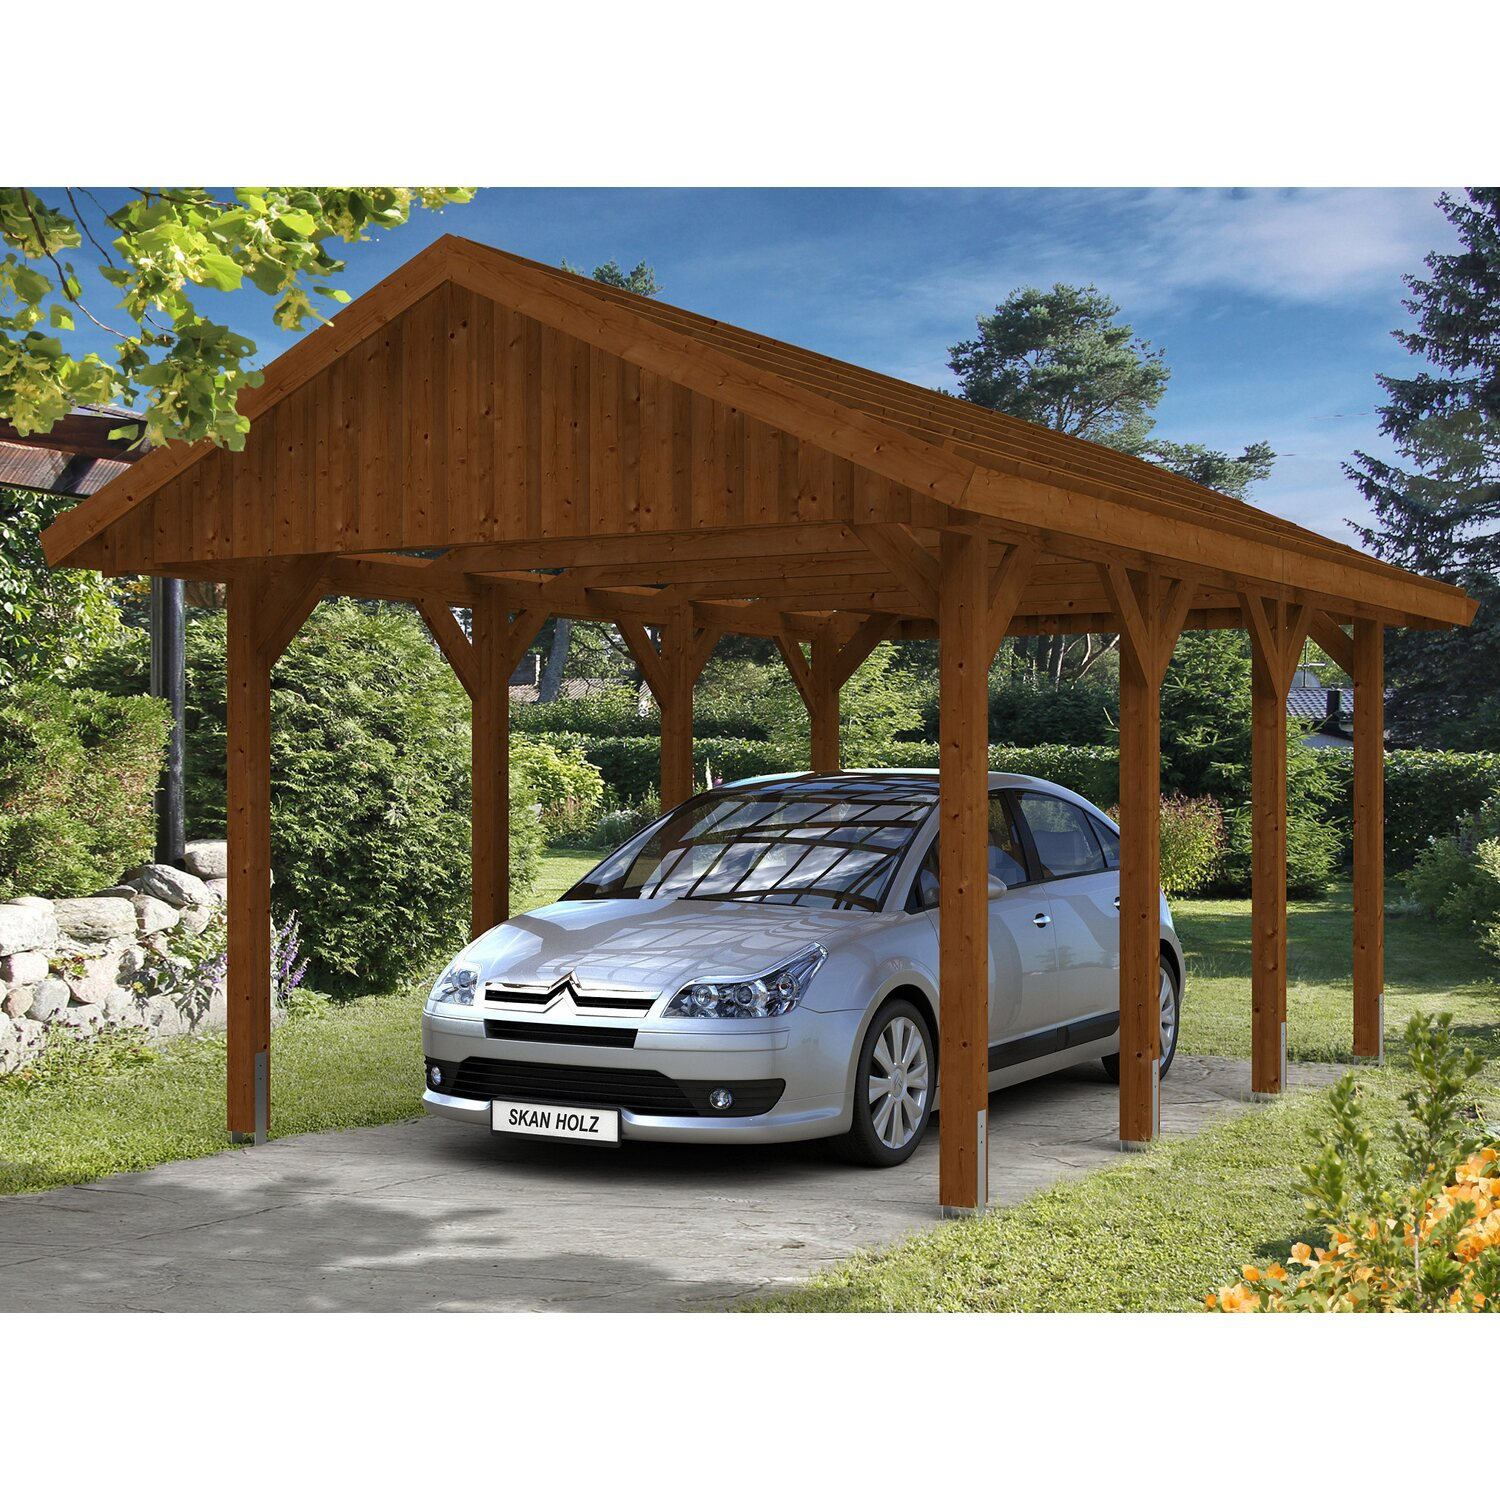 skan holz satteldach carport sauerland 380 cm x 600 cm nussbaum kaufen bei obi. Black Bedroom Furniture Sets. Home Design Ideas